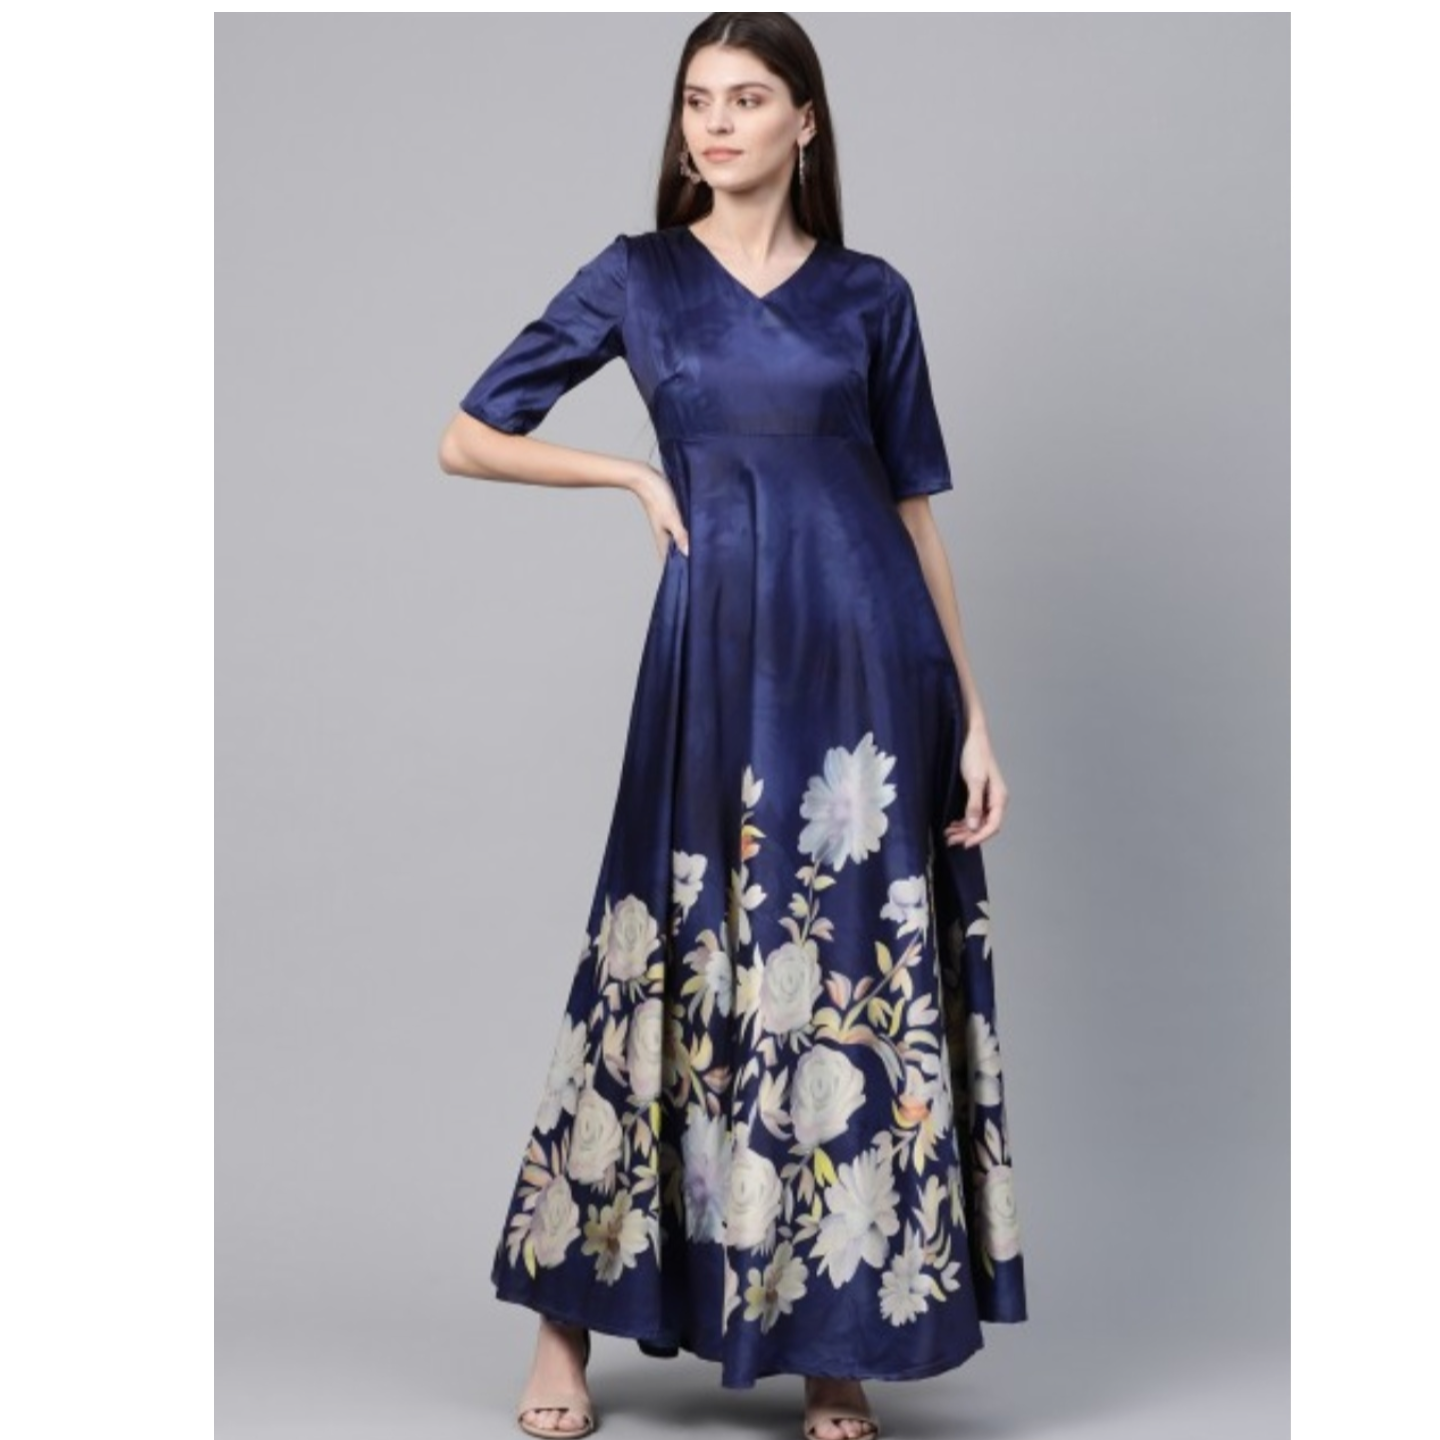 Navy Blue & White Digital Floral Print Maxi Dress